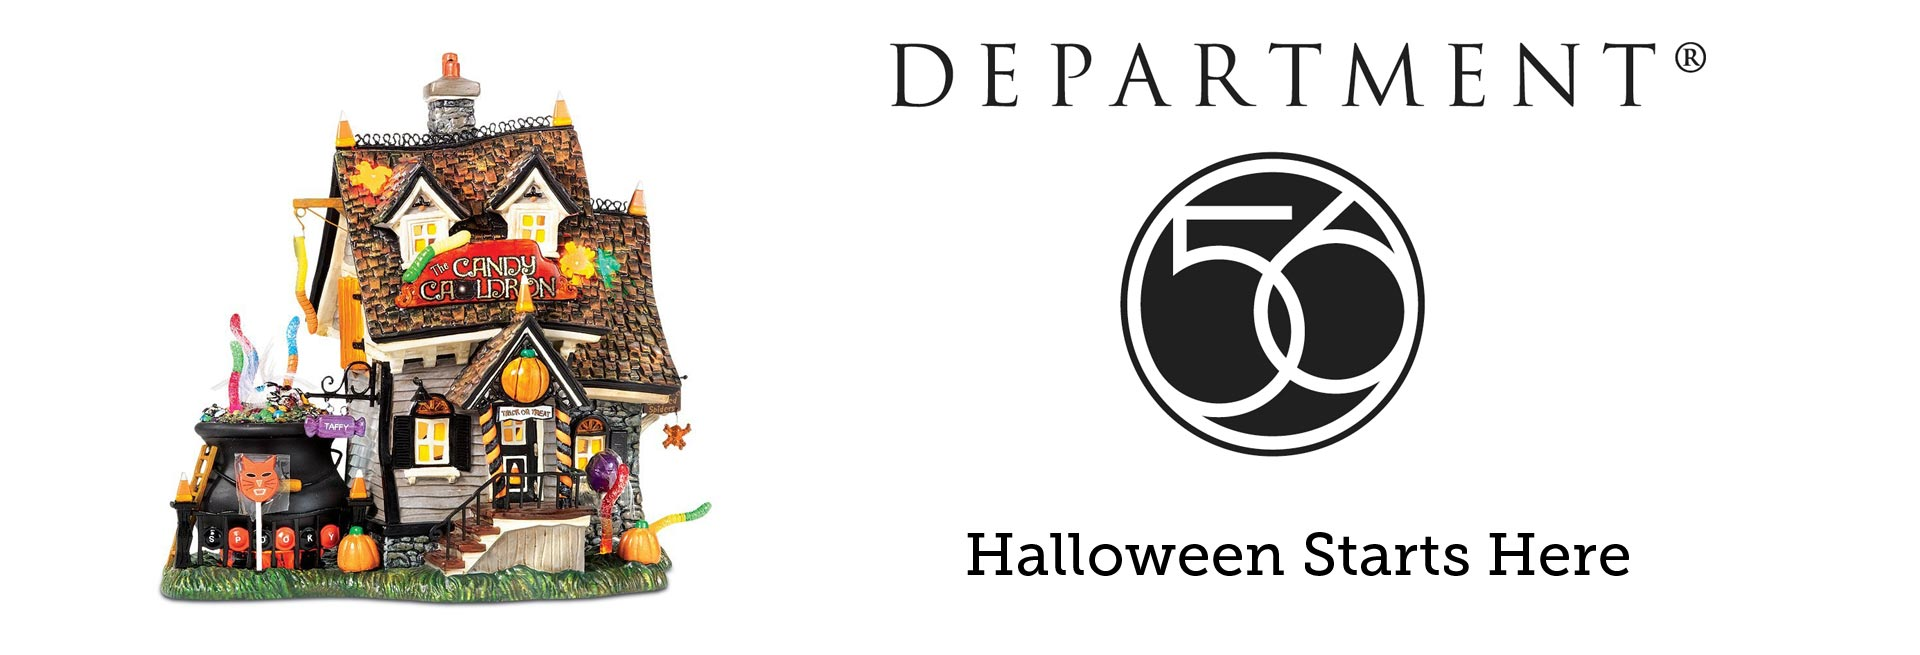 Department 56 Halloween Decor